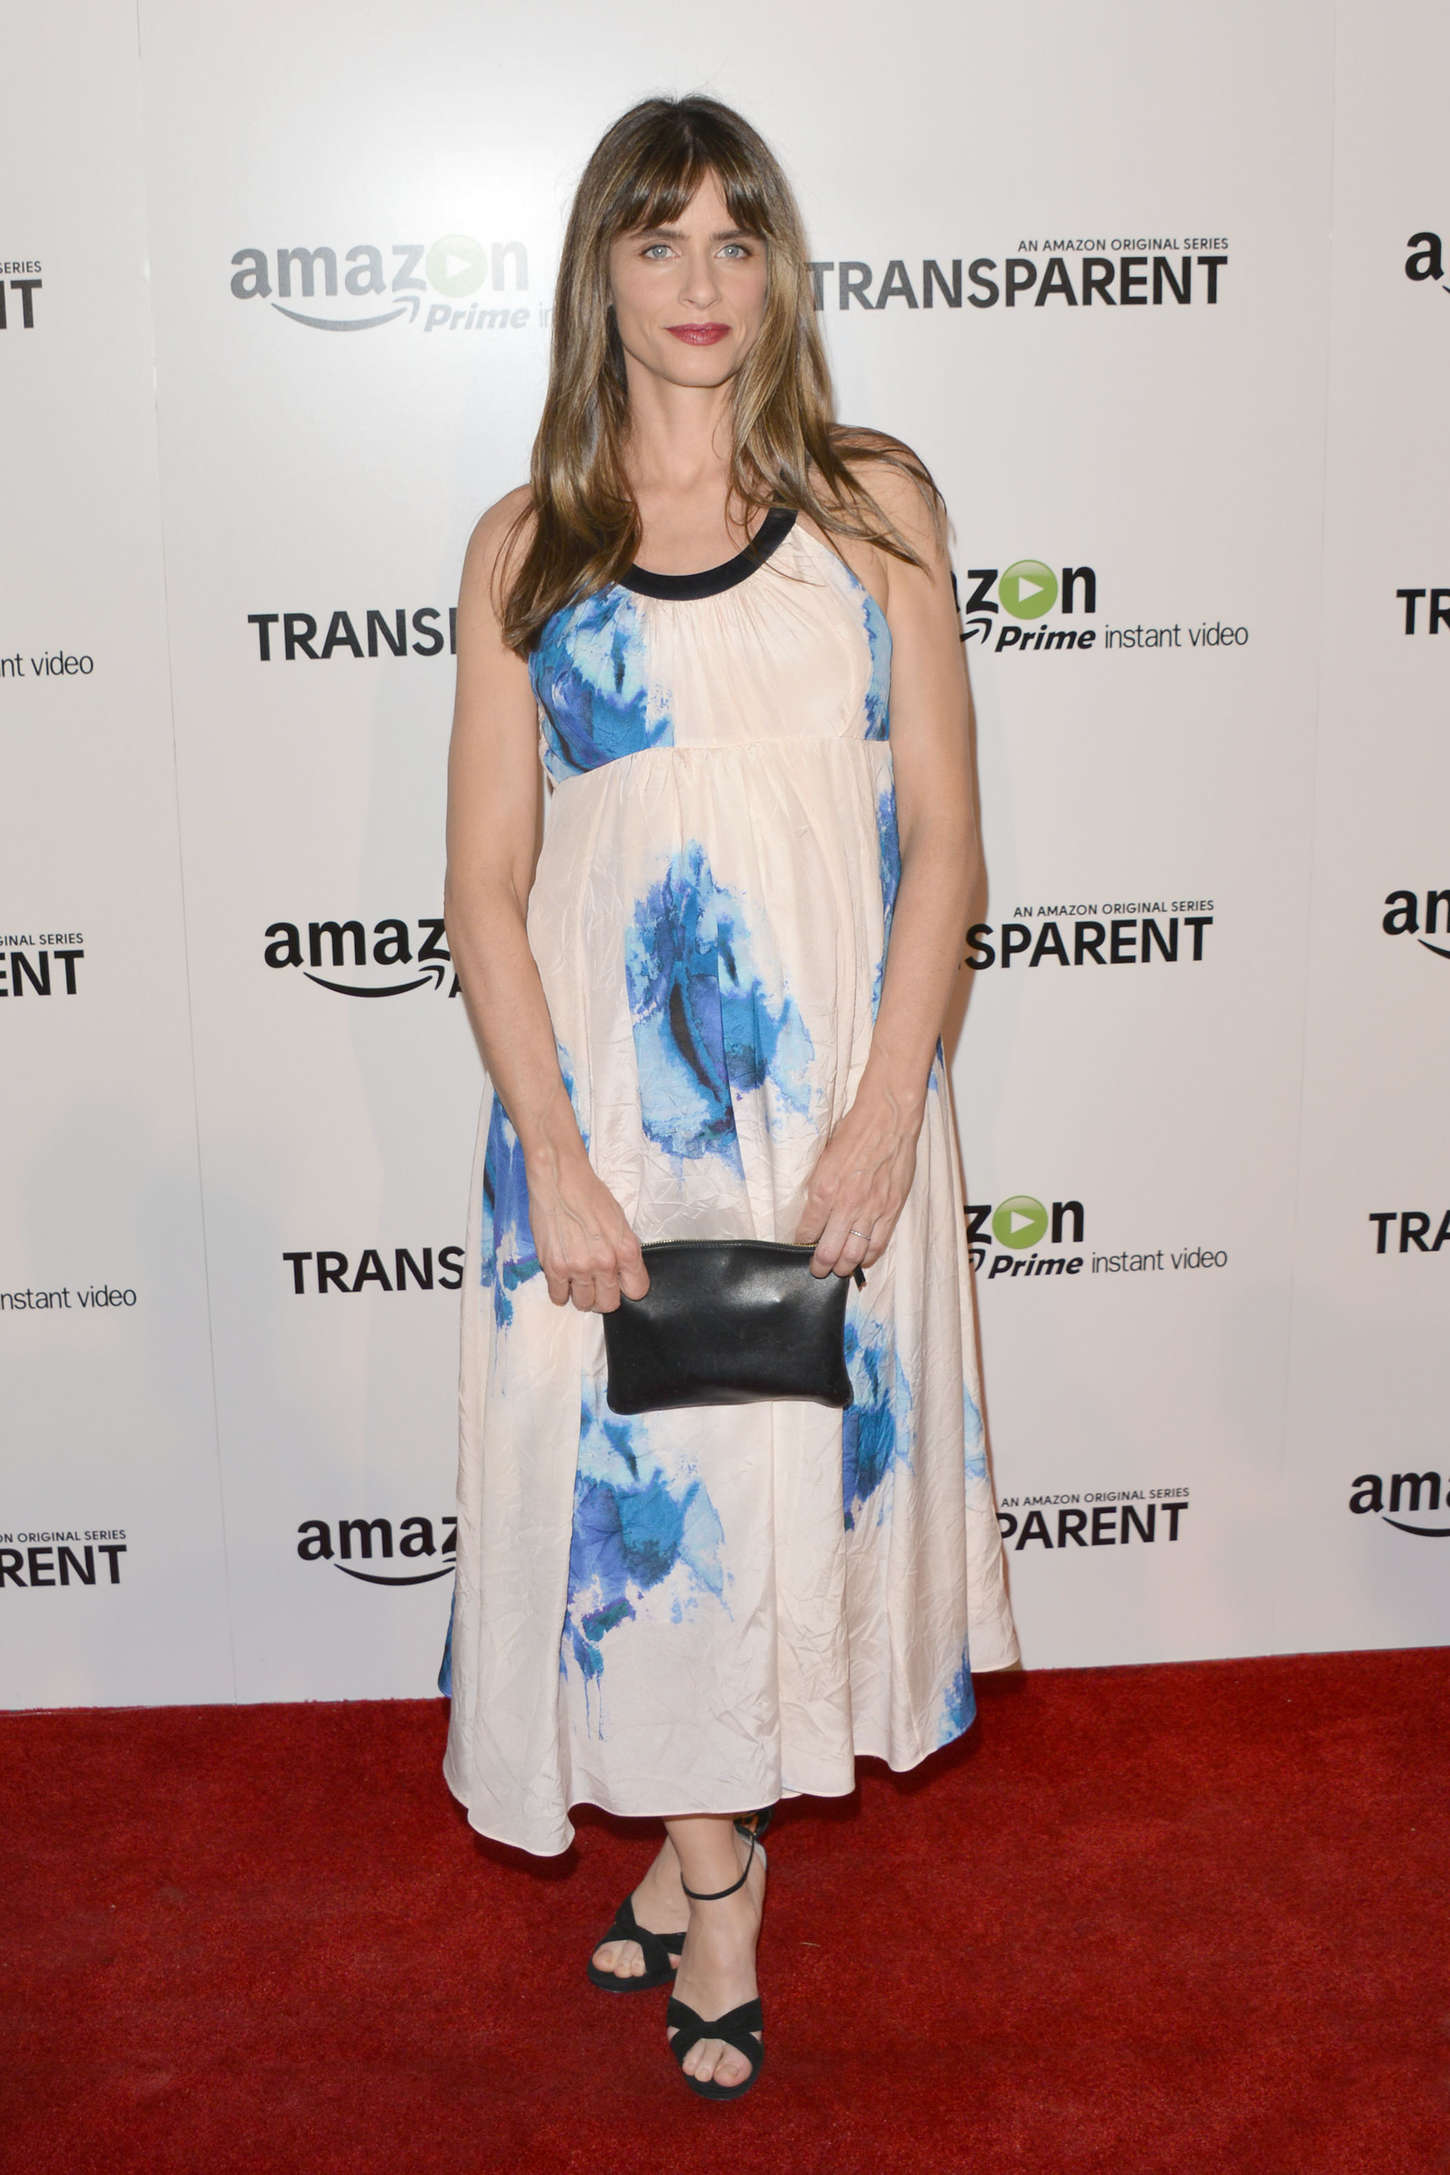 Amanda Peet Transparent Premiere in Los Angeles-1